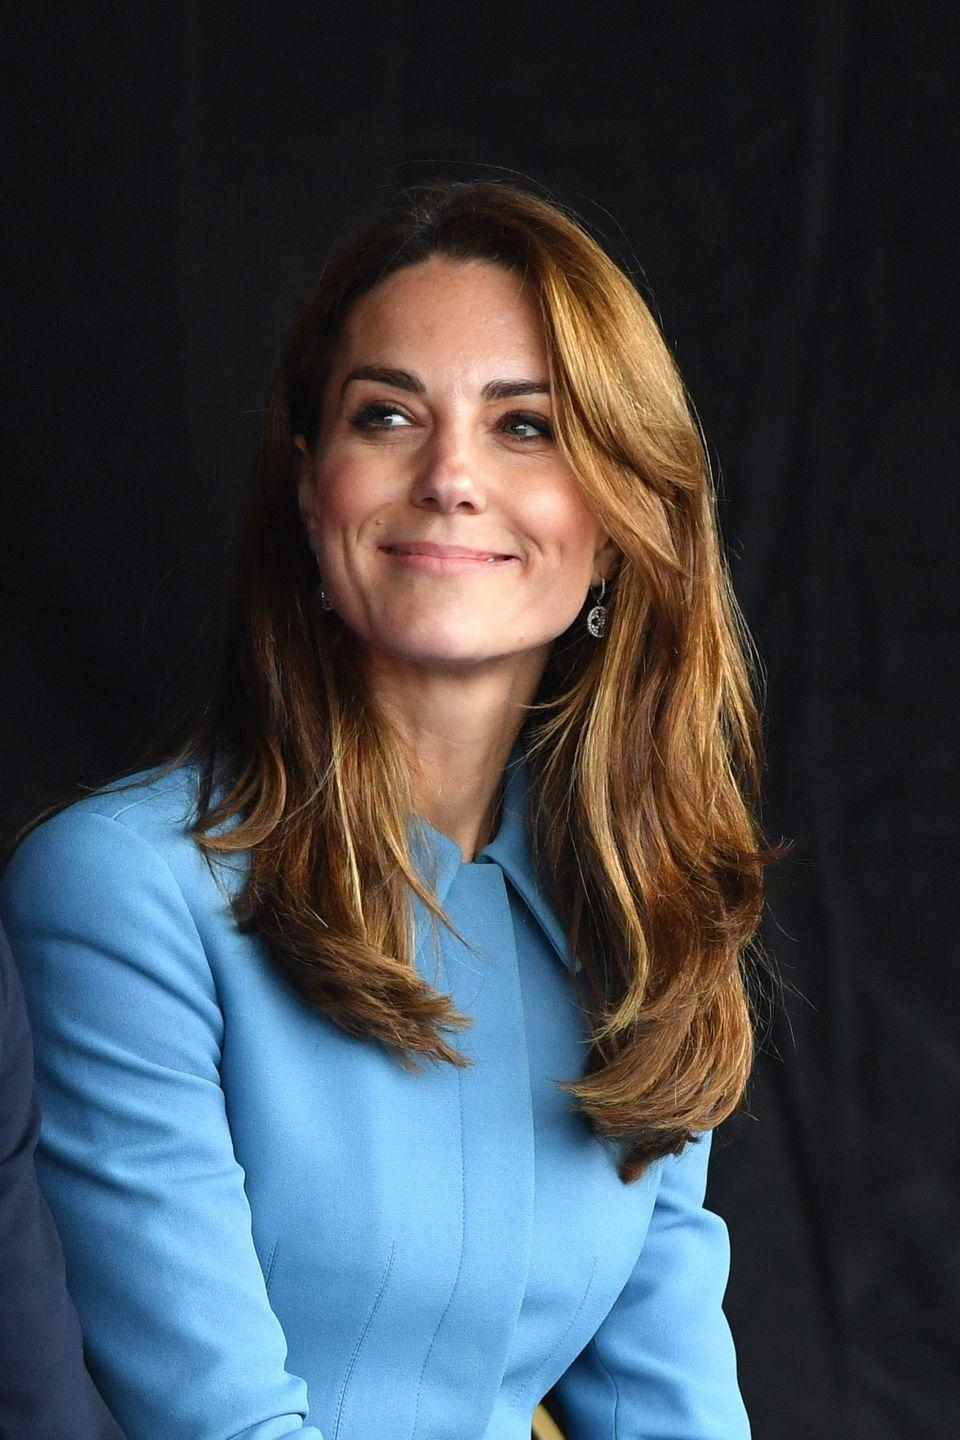 """<p>Kate Middleton has noticeably added some caramel tones to her signature color and celebrity hairstylist<a href=""""https://www.instagram.com/hairinel/?hl=en"""" rel=""""nofollow noopener"""" target=""""_blank"""" data-ylk=""""slk:Irinel de León"""" class=""""link rapid-noclick-resp""""> Irinel de León</a> is all about it. """"Some women love going darker during fall but sometimes I recommend added some lighter tones to keep a sun kissed look throughout the fall and winter months."""" She cautions, though, that anyone with very dark hair may want to steer clear of this look. """"Achieving this hair color would mean lightening a few levels, which makes regrowth pretty obvious if it's not maintained."""" </p>"""